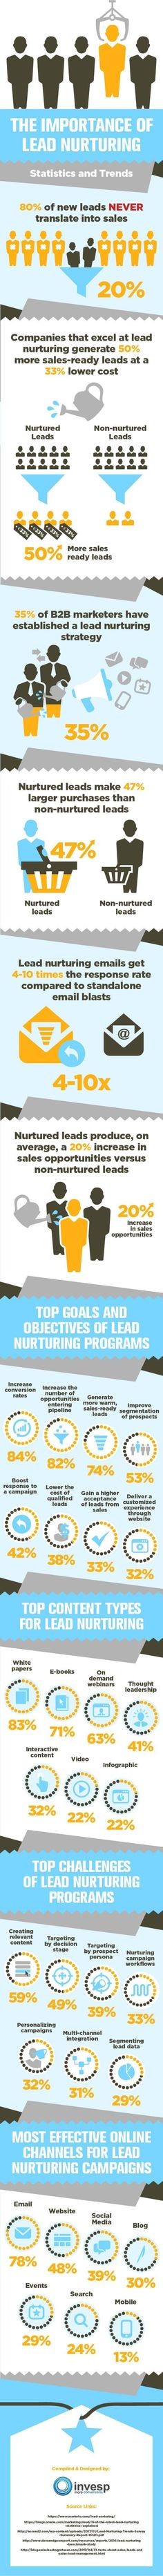 Lead Nurturing: How to Turn Website Leads into Customers #Infographic #Marketing